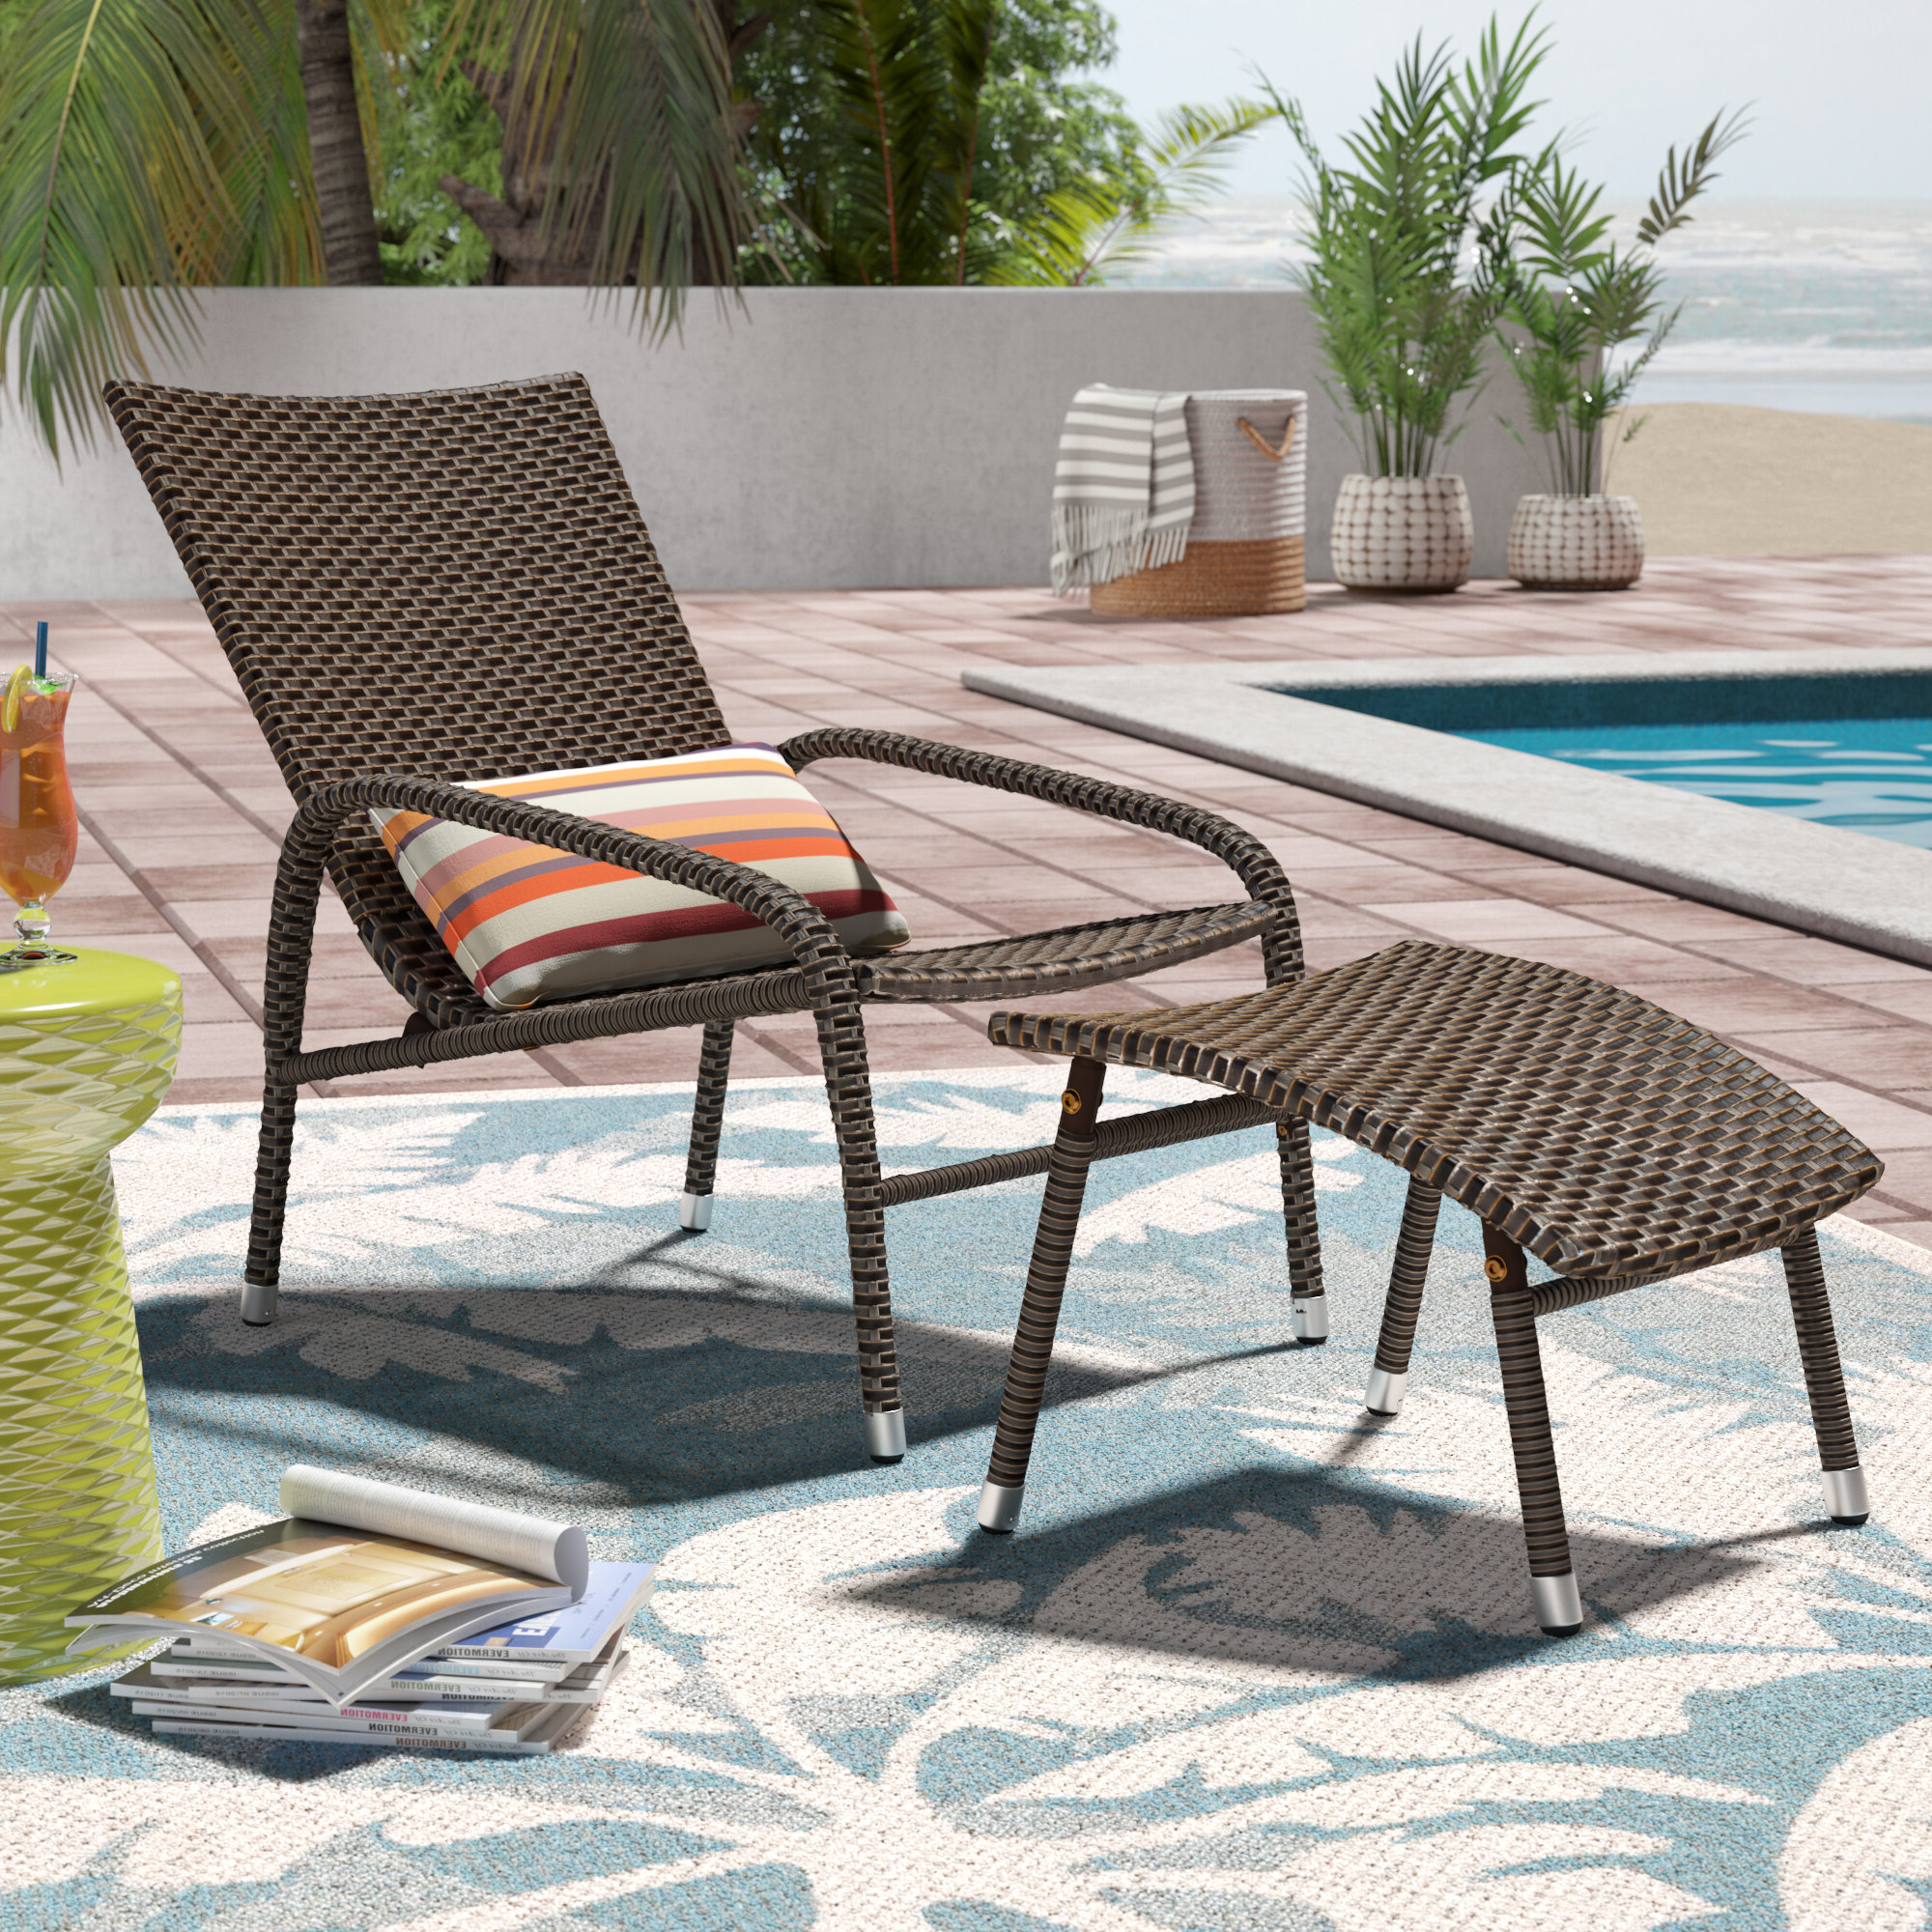 Well Known Outdoor Patio Lounge Chairs With Ottoman Regarding Alois Lounge Chair With Ottoman (View 8 of 25)